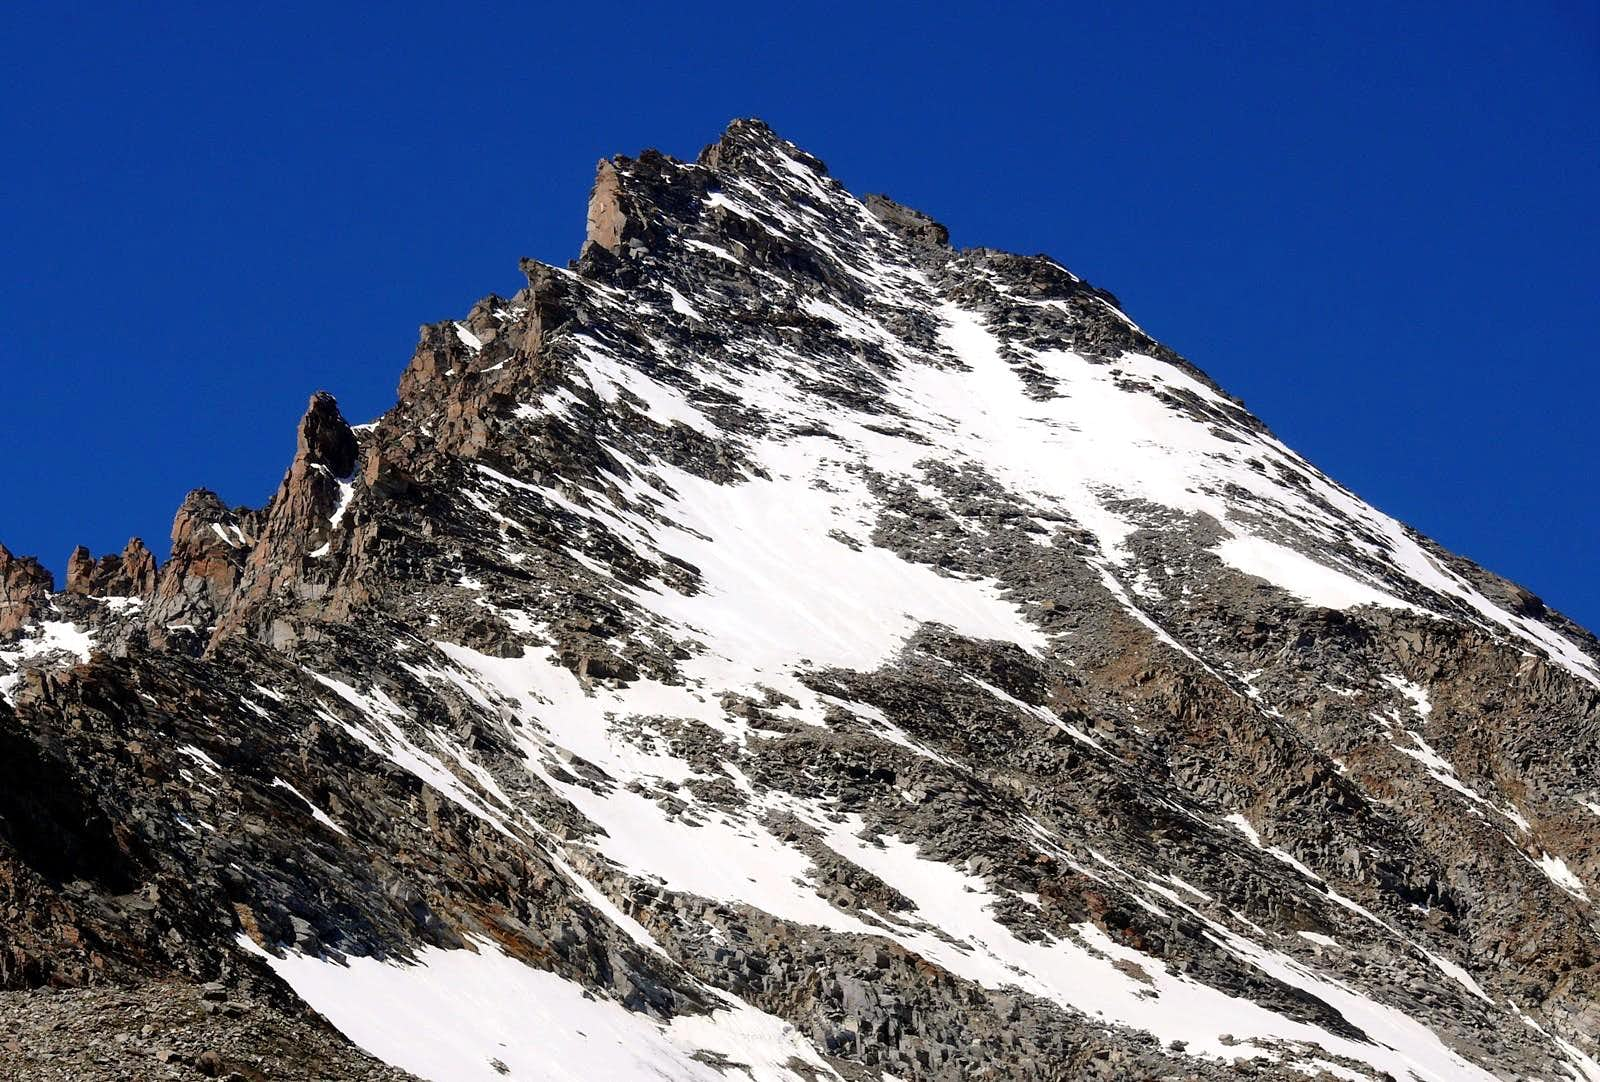 The famous 3.500m in the Aosta Valley and the normal route or no <b>(Cogne Valley)</b>